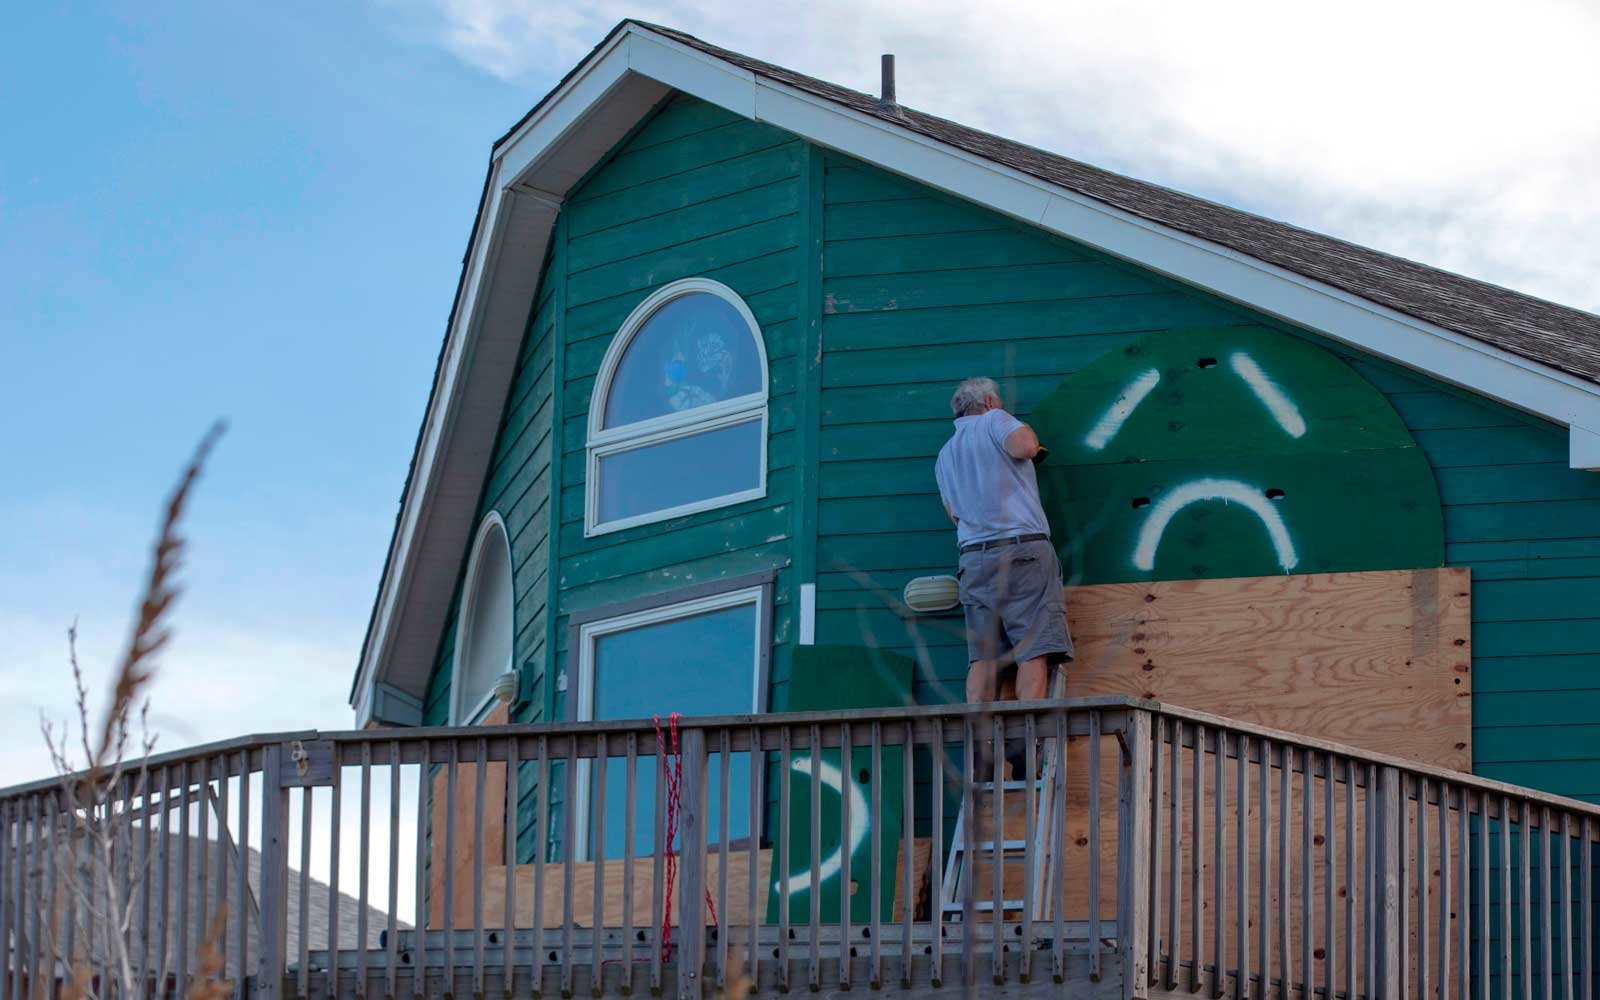 A man uses a drill to install storm shutters on a home in Kill Devil Hills in the Outer Banks of North Carolina on September 11, 2018.